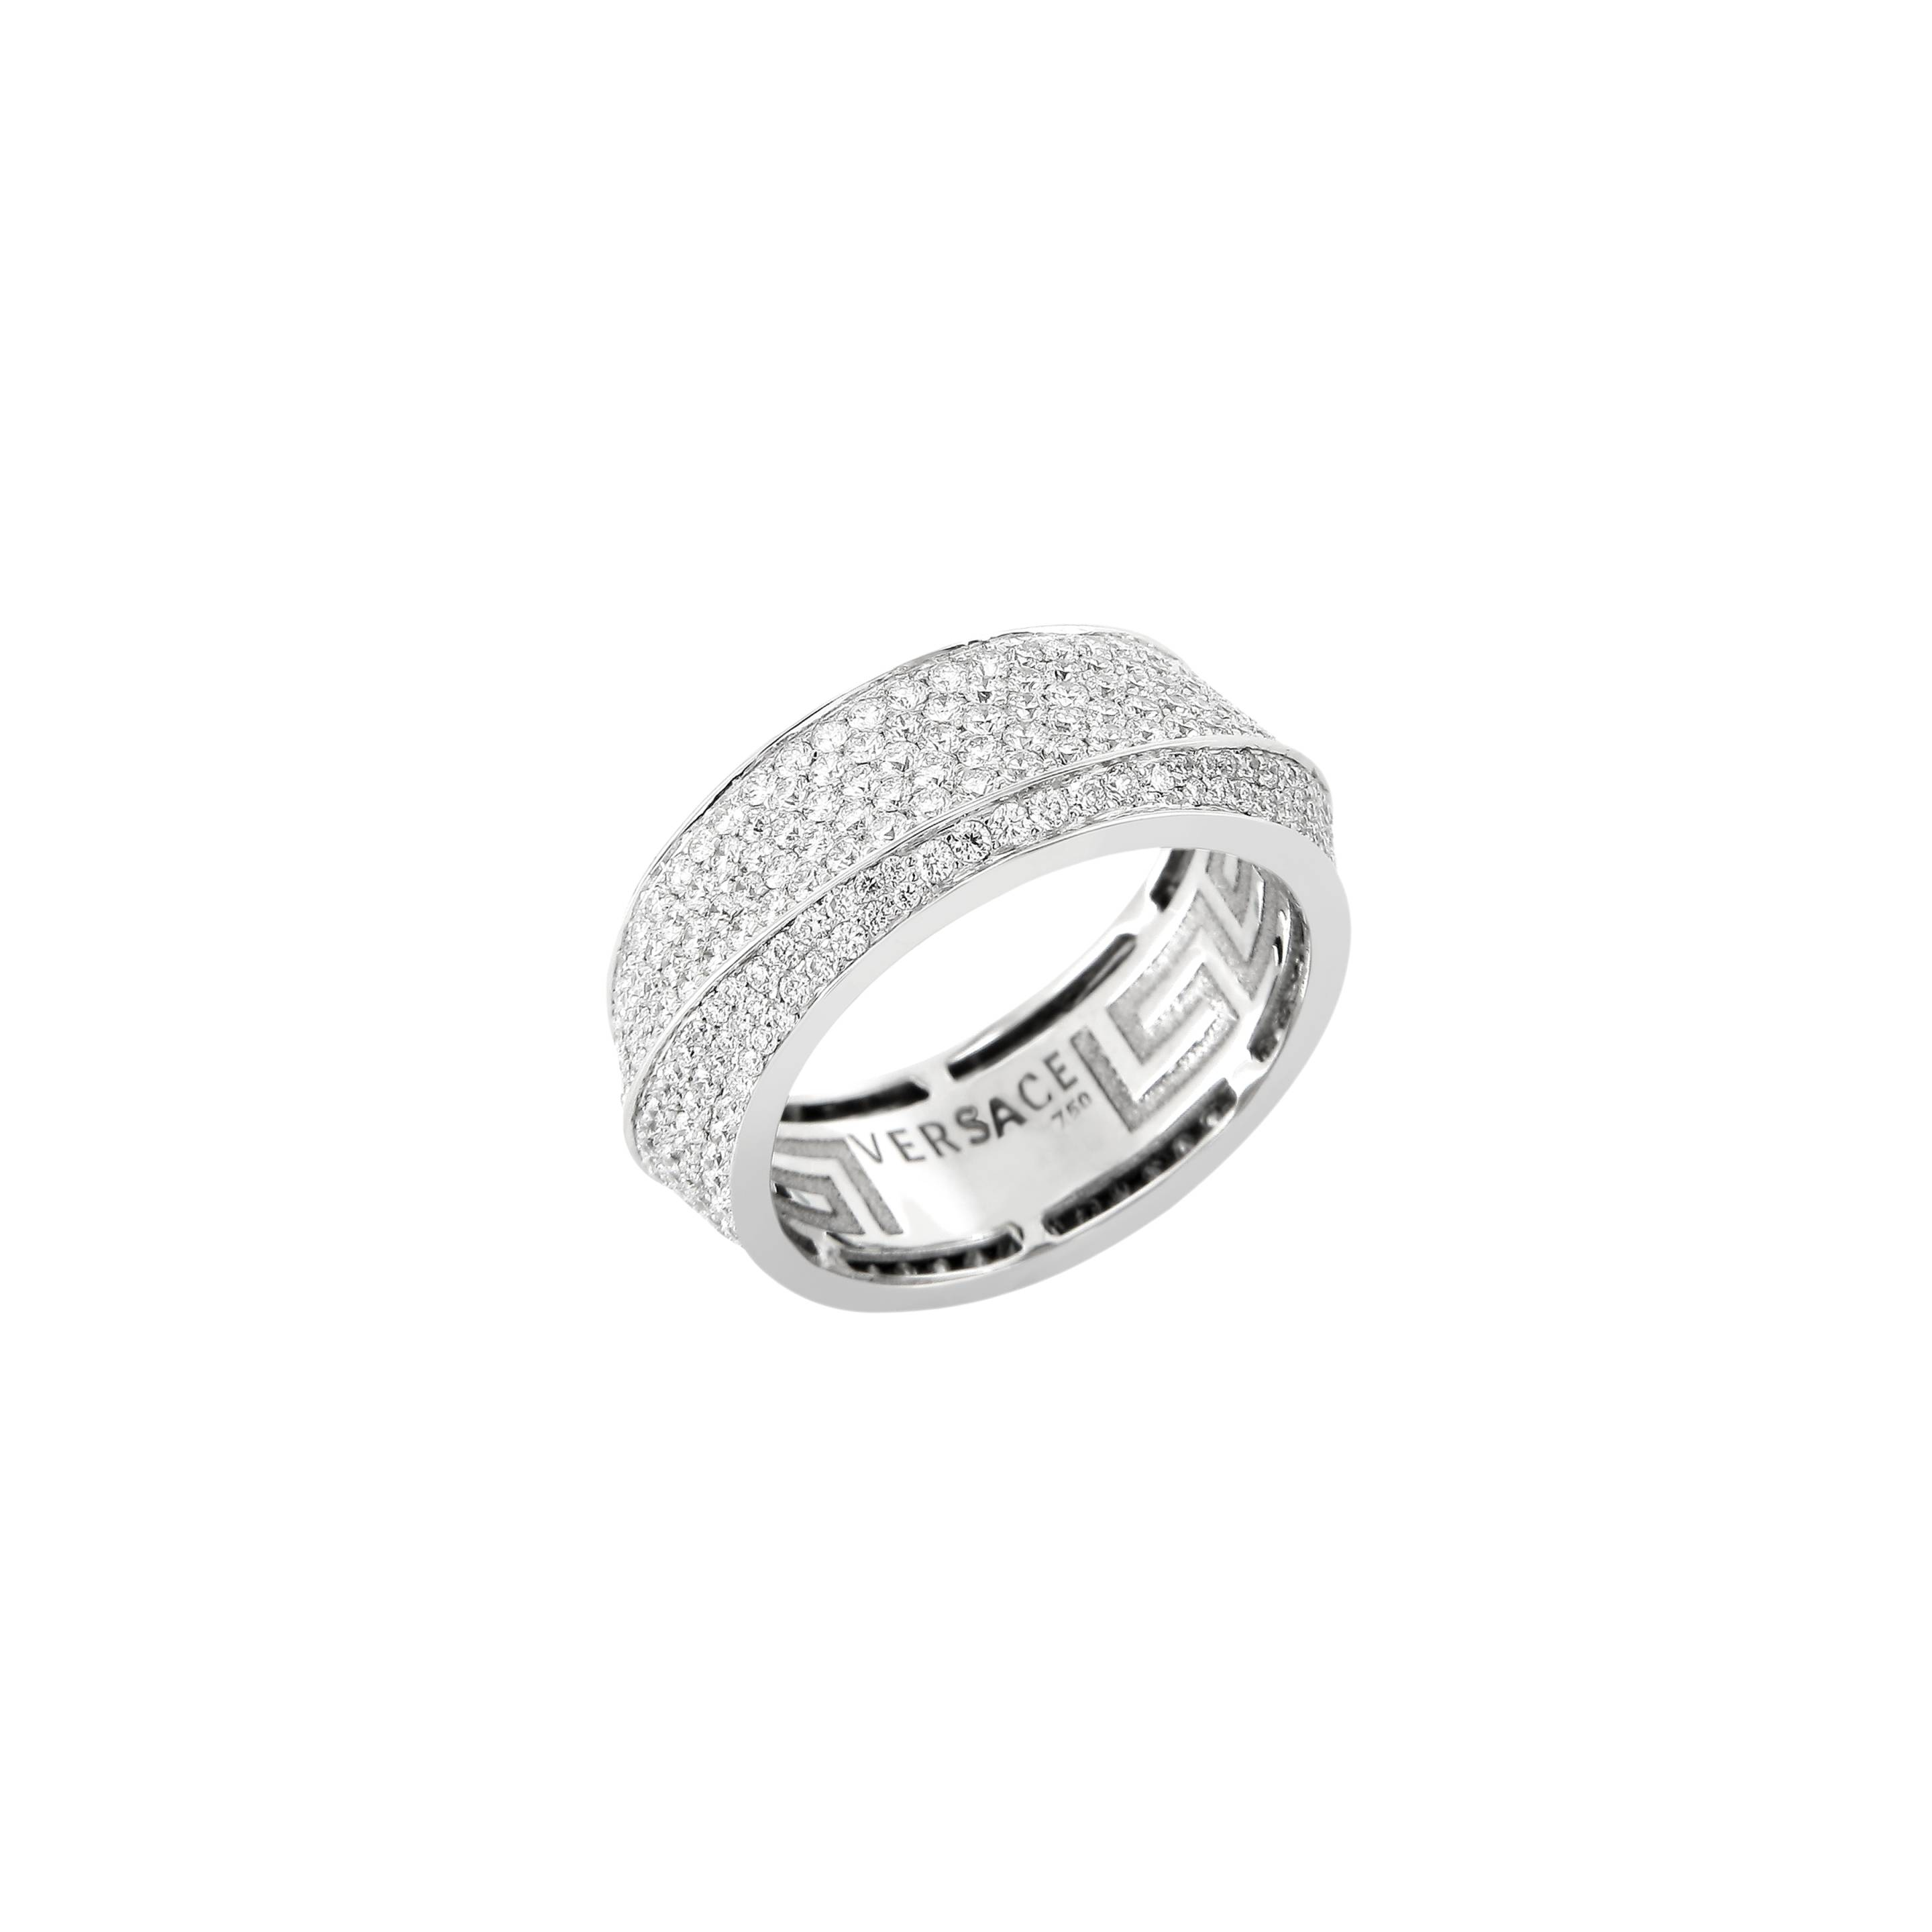 Versace twist ring – 110RWGDY13